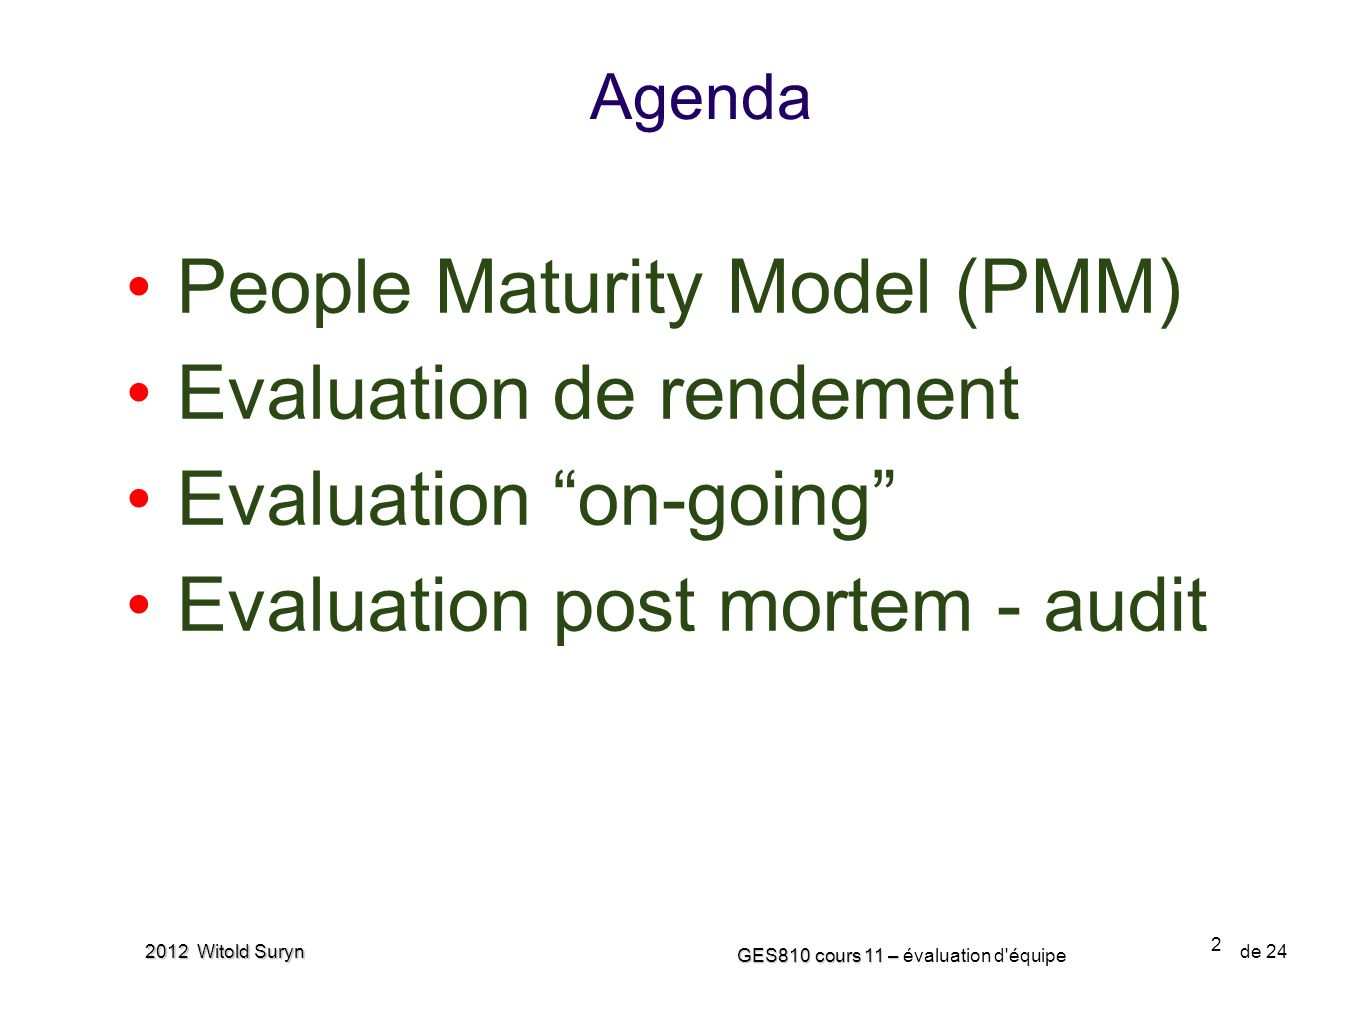 People Maturity Model (PMM) Evaluation de rendement